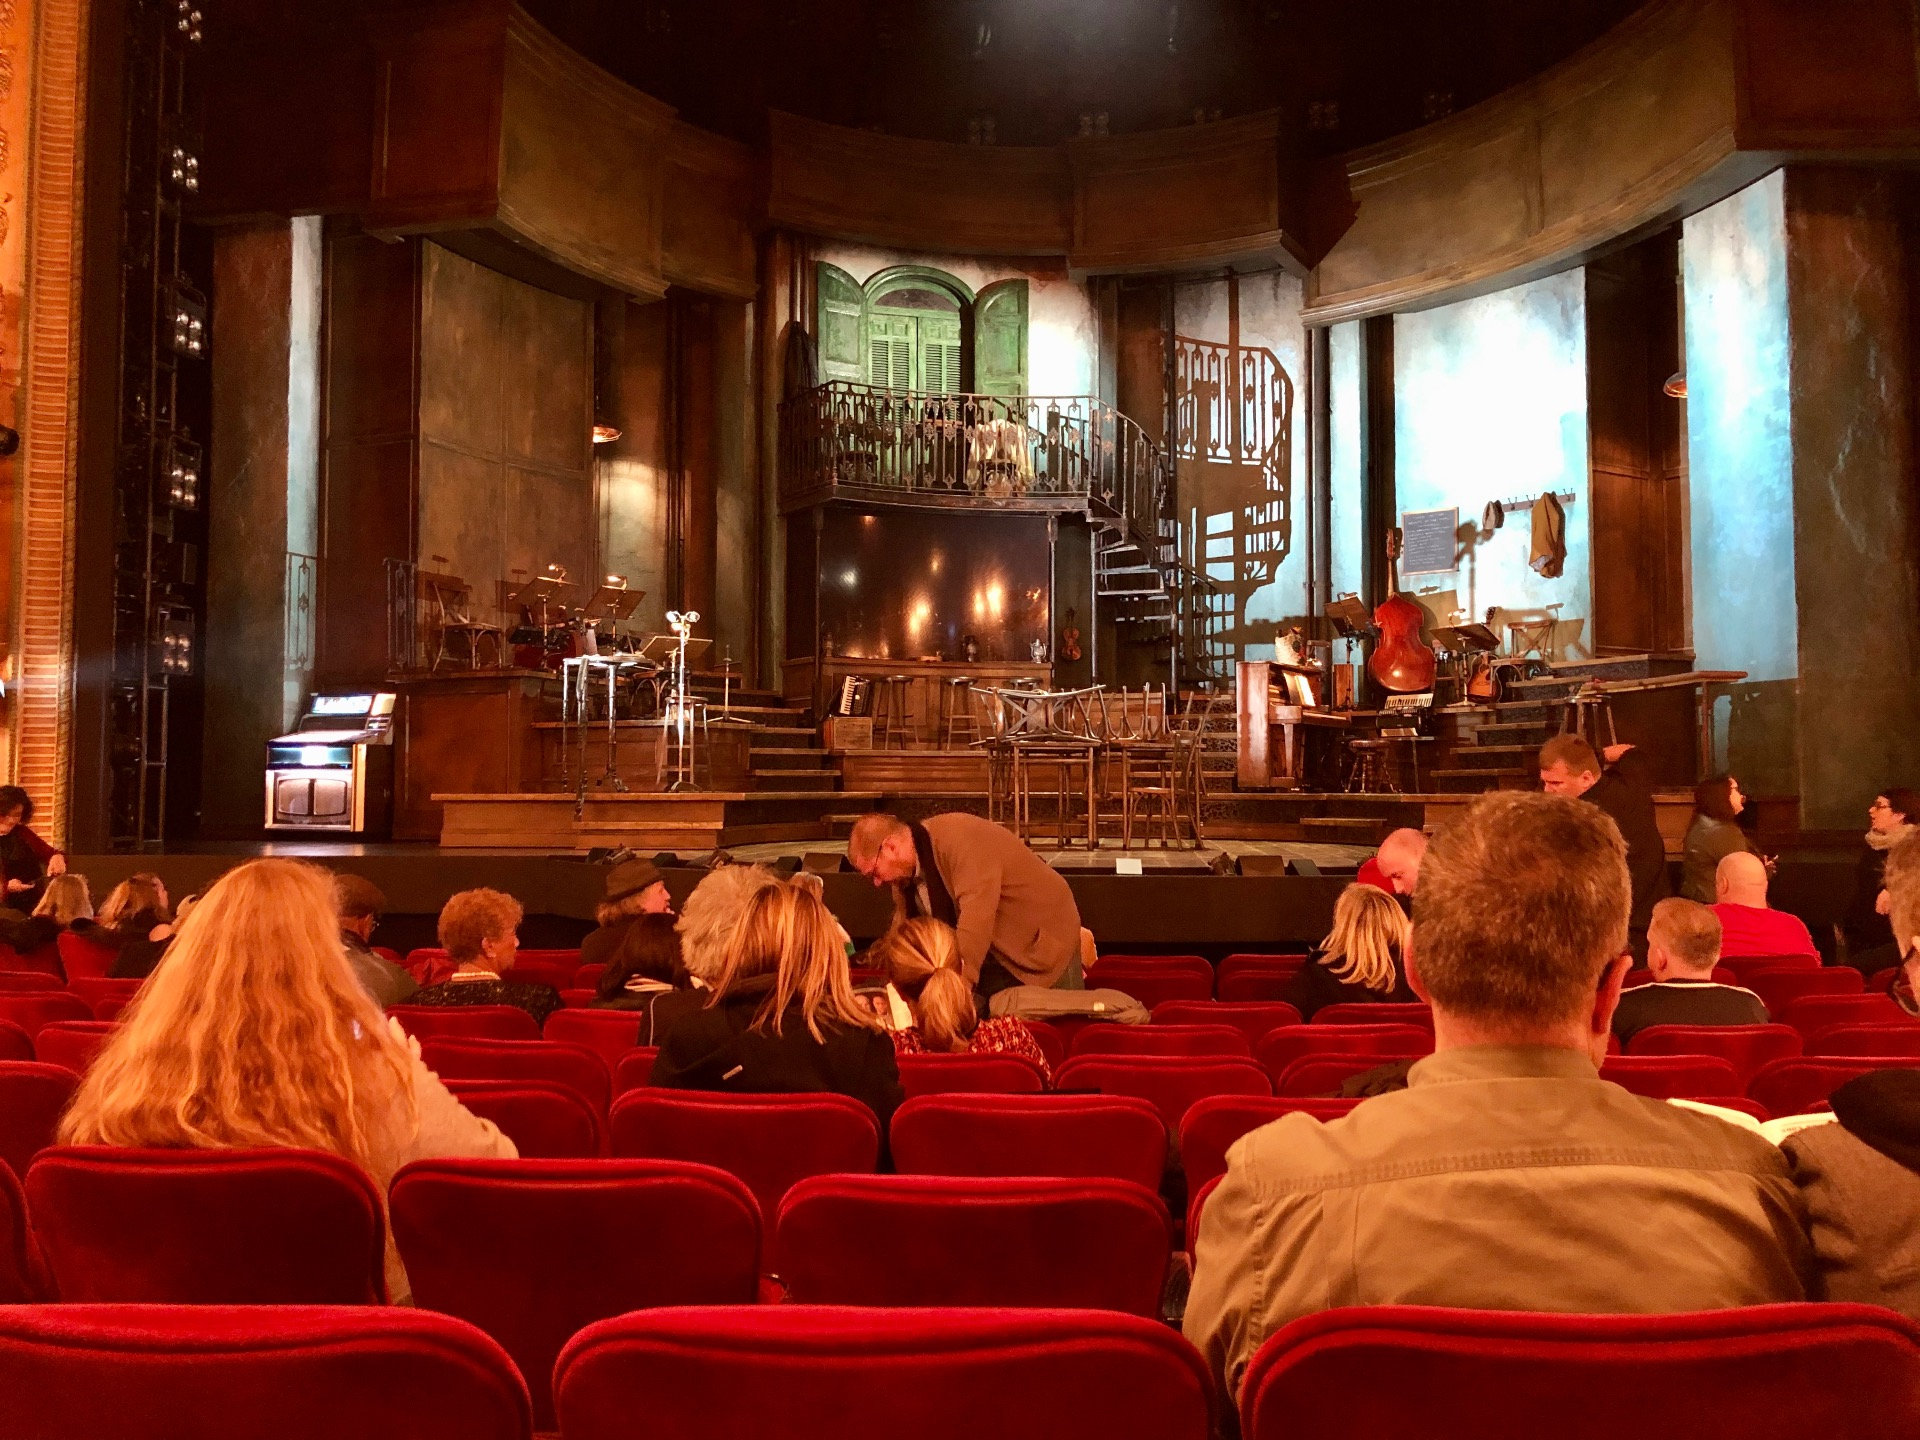 Walter Kerr Theatre Section Orchestra C Row M Seat 105